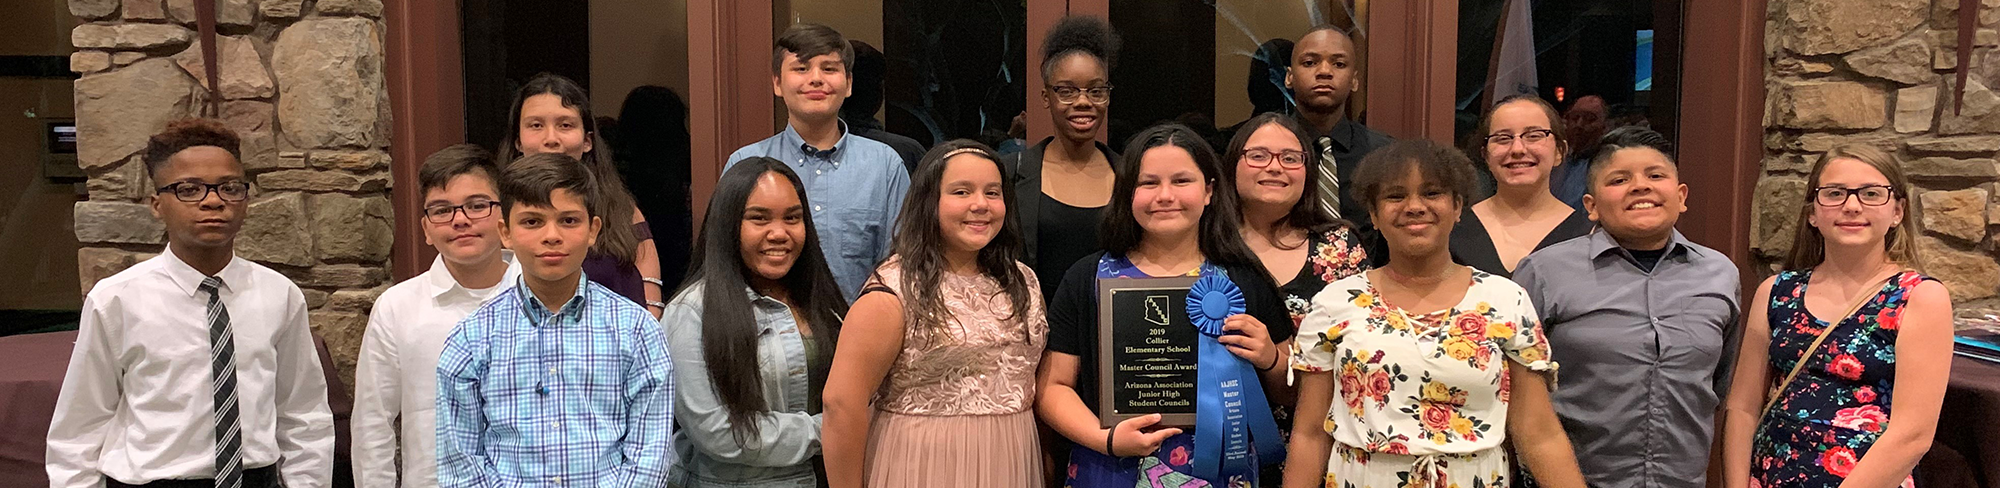 Students pose together with the 2019 Master Council Award